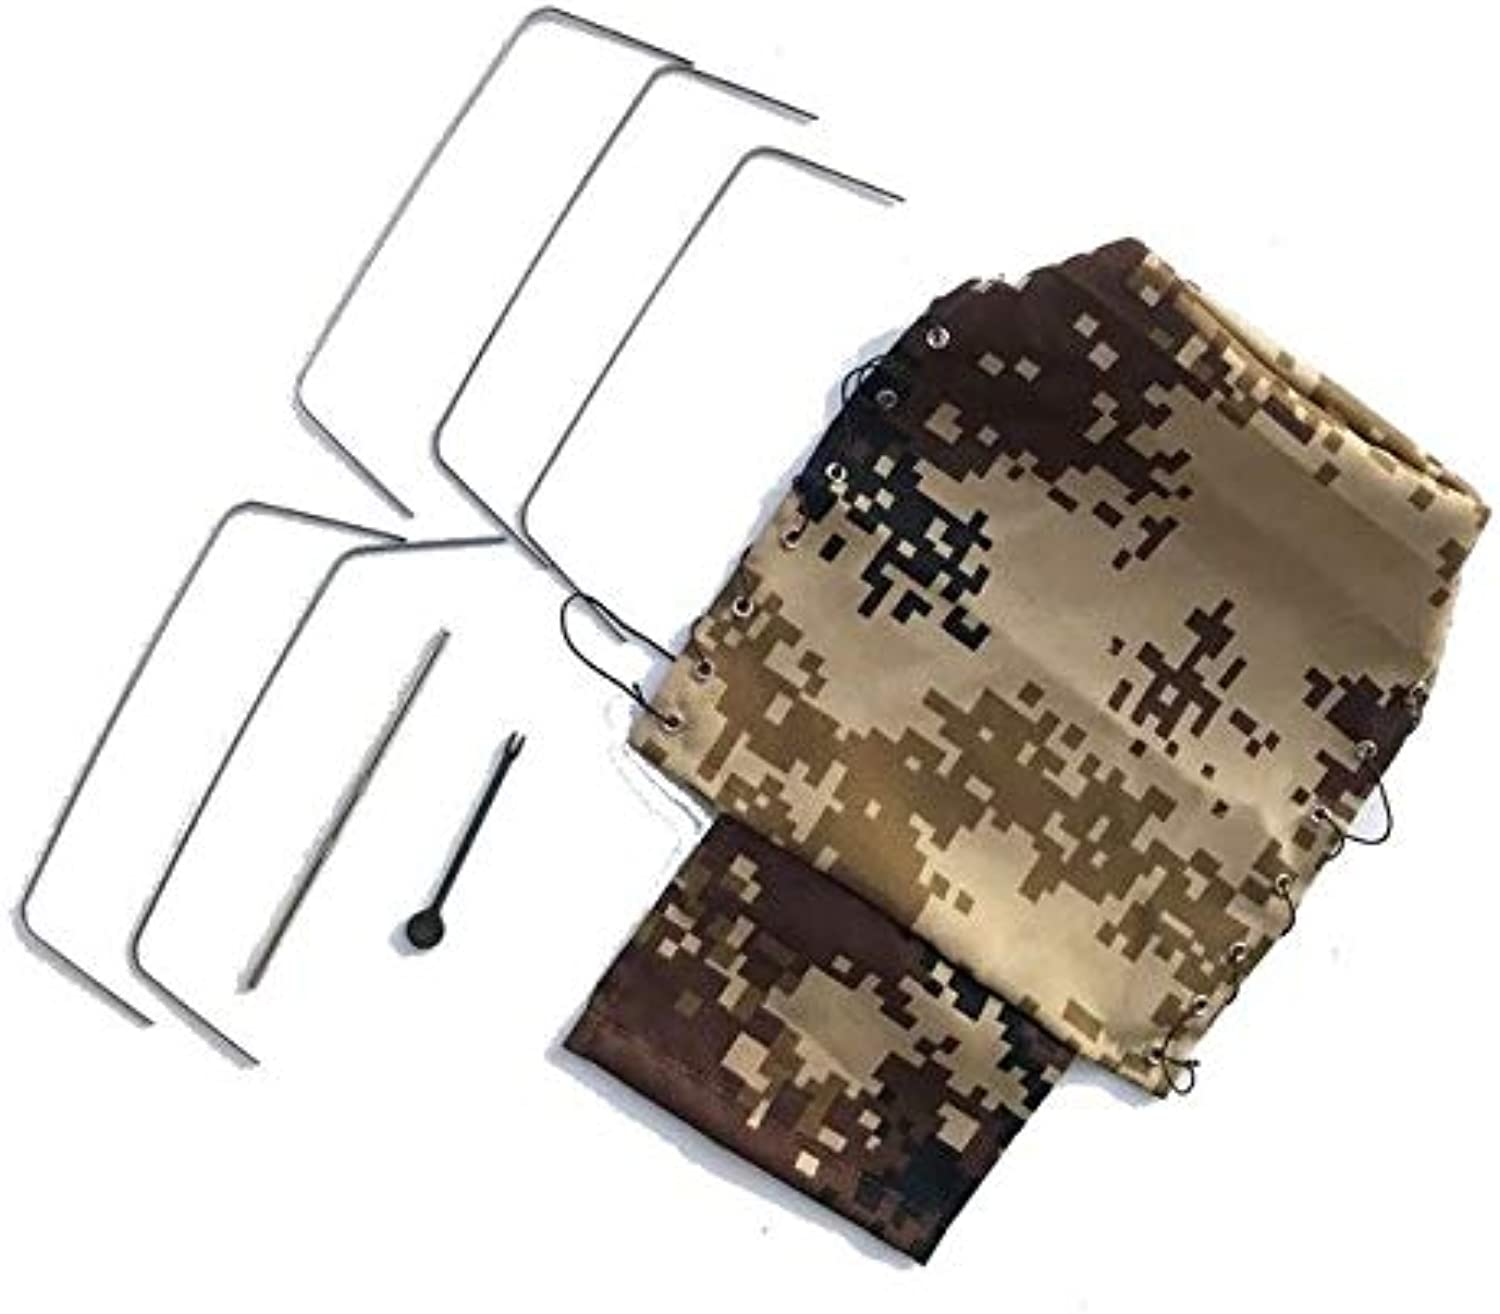 Canvas Truck Hood Cover Cloth for WPL B24 B16 1 16 Military Truck Rock Crawler RC Car DIY Spare Parts Camoufalge Three colors   Camouflage